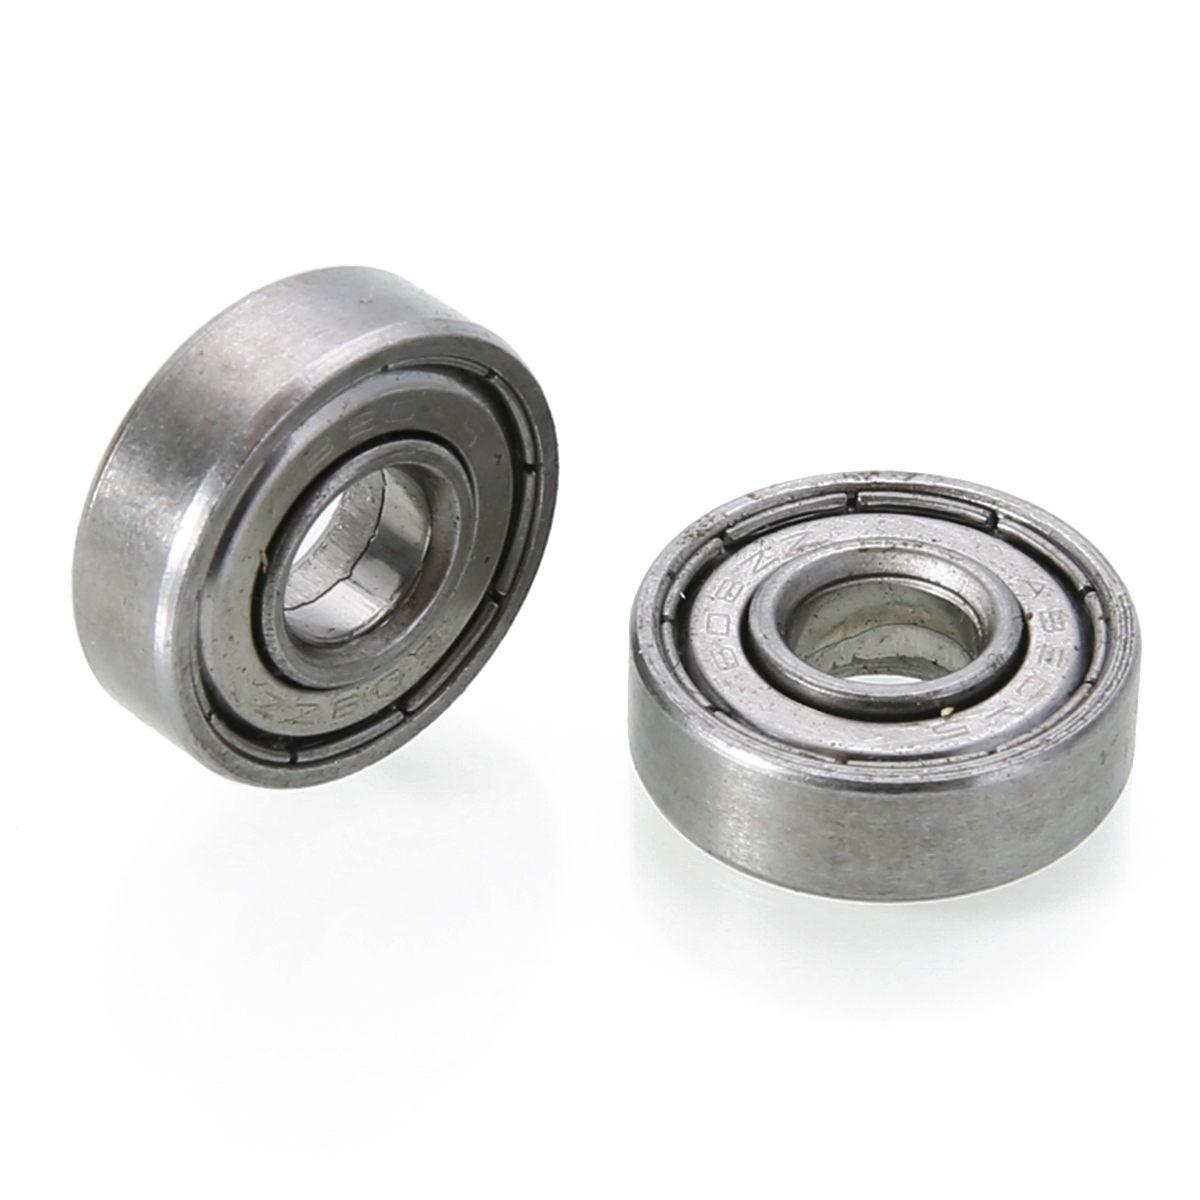 10pcs Small Wear 608zz Ball Bearing Mayitr Carbon Steel Precise Deep Groove Bearings For Skateboard Roller Blade Scooter серьги